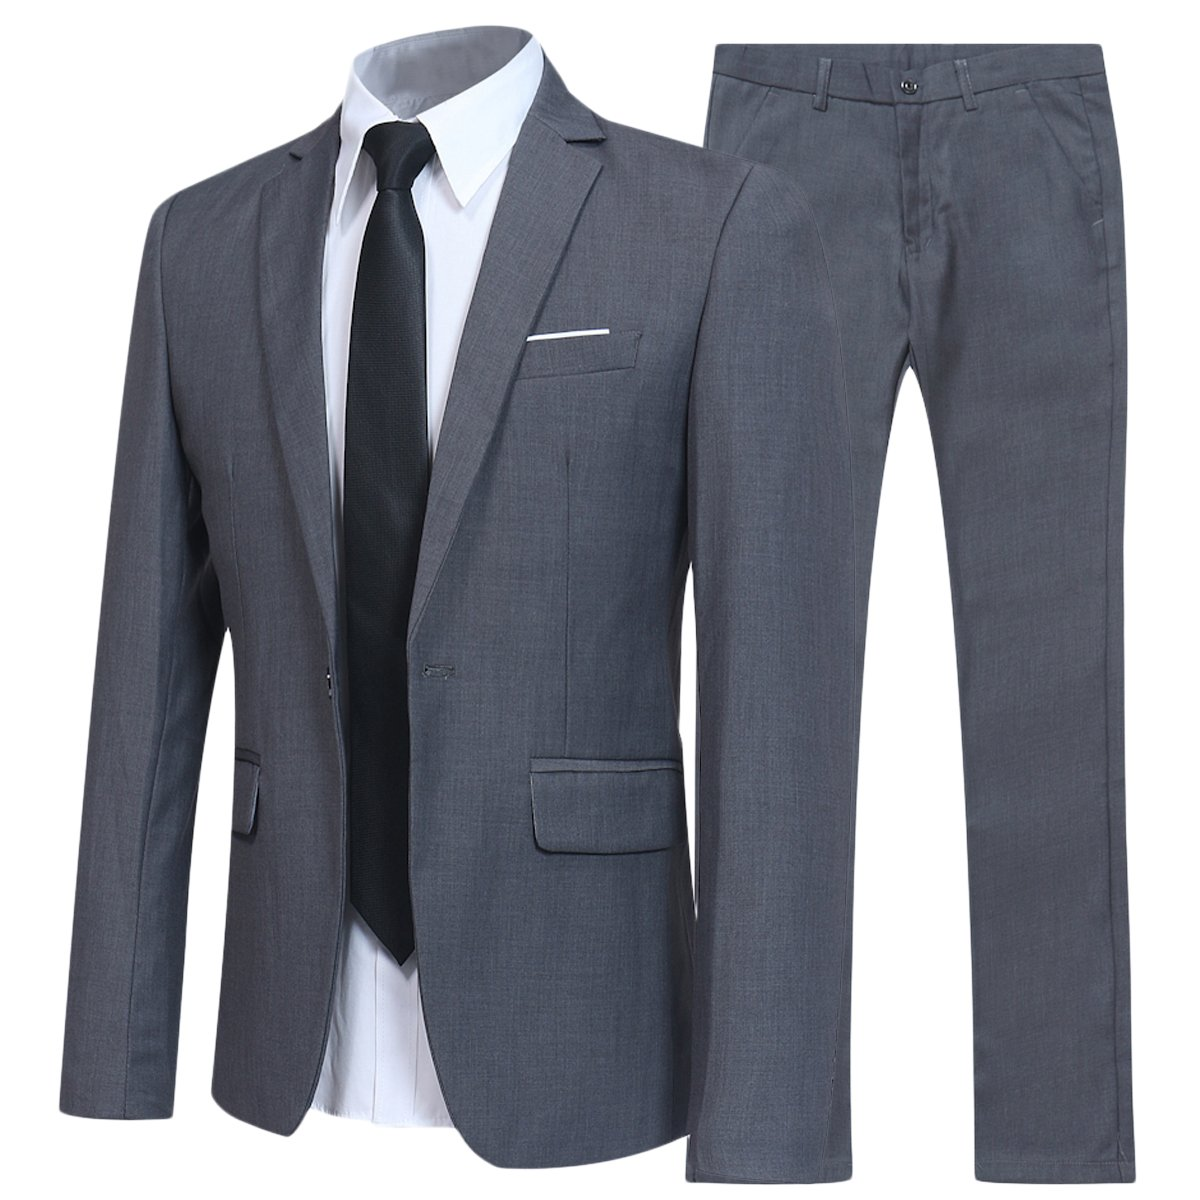 Mens Suits 2 Piece Suit Slim Fit Wedding Dinner Tuxedo Suits For Men Business Casual Jacket Trousers 10 Colors Available Buy Online In Moldova At Moldova Desertcart Com Productid 97819467